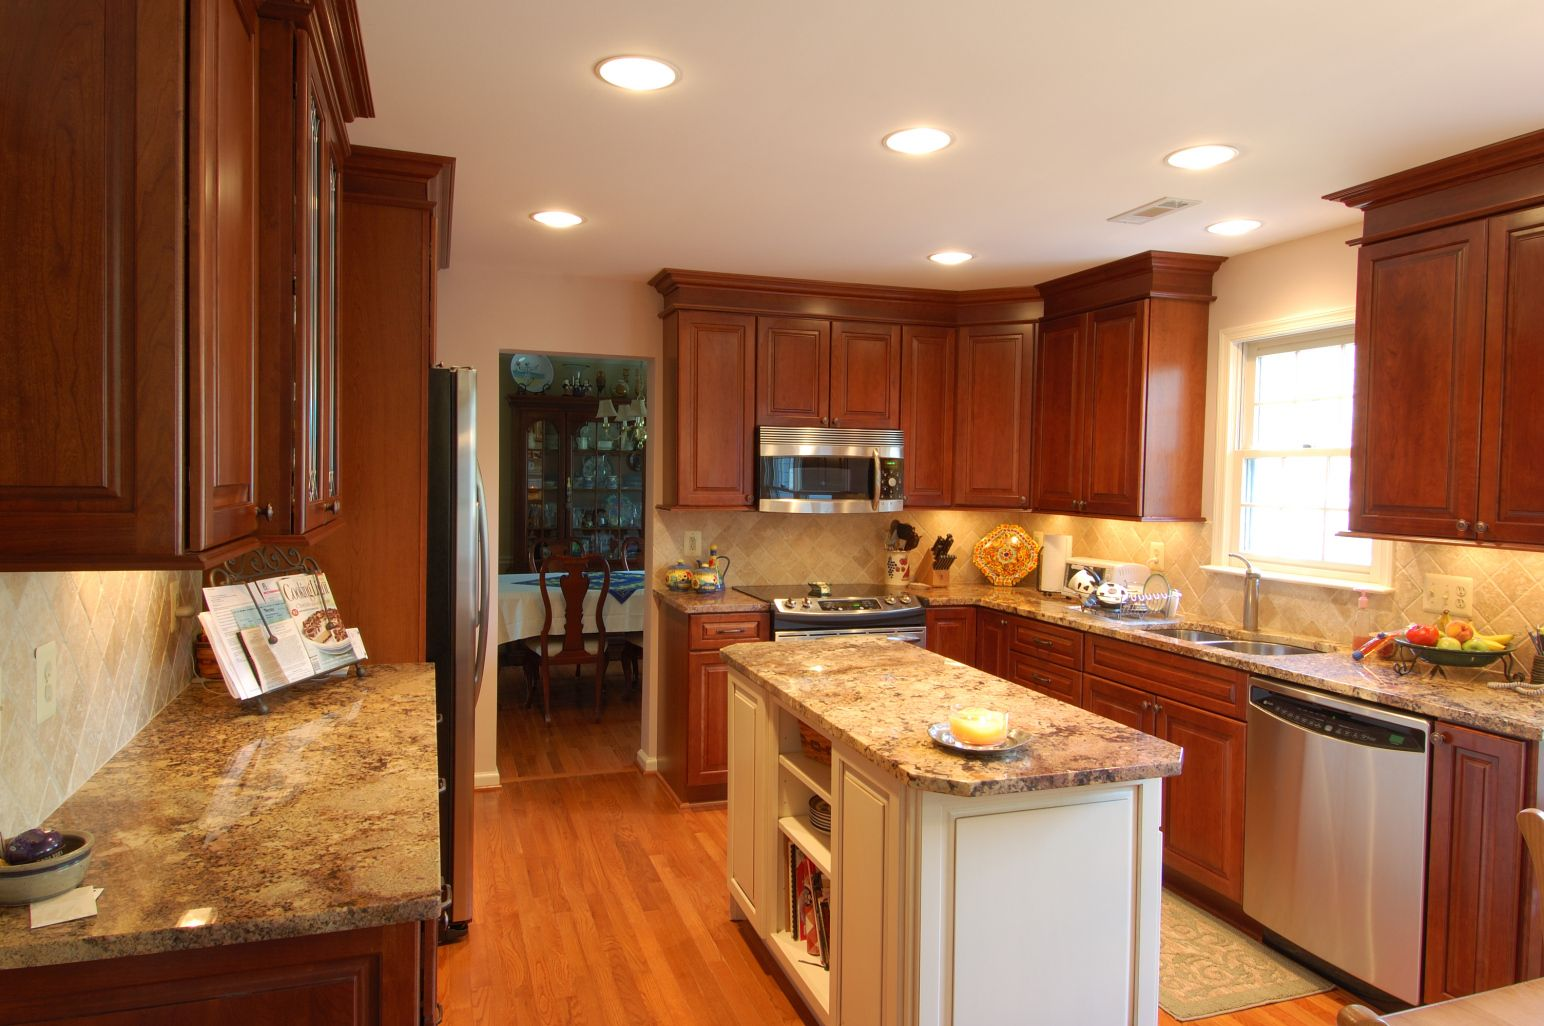 Estimated Cost Of Kitchen Remodel Kitchen Trash Can Ideas - Estimated cost of kitchen remodel